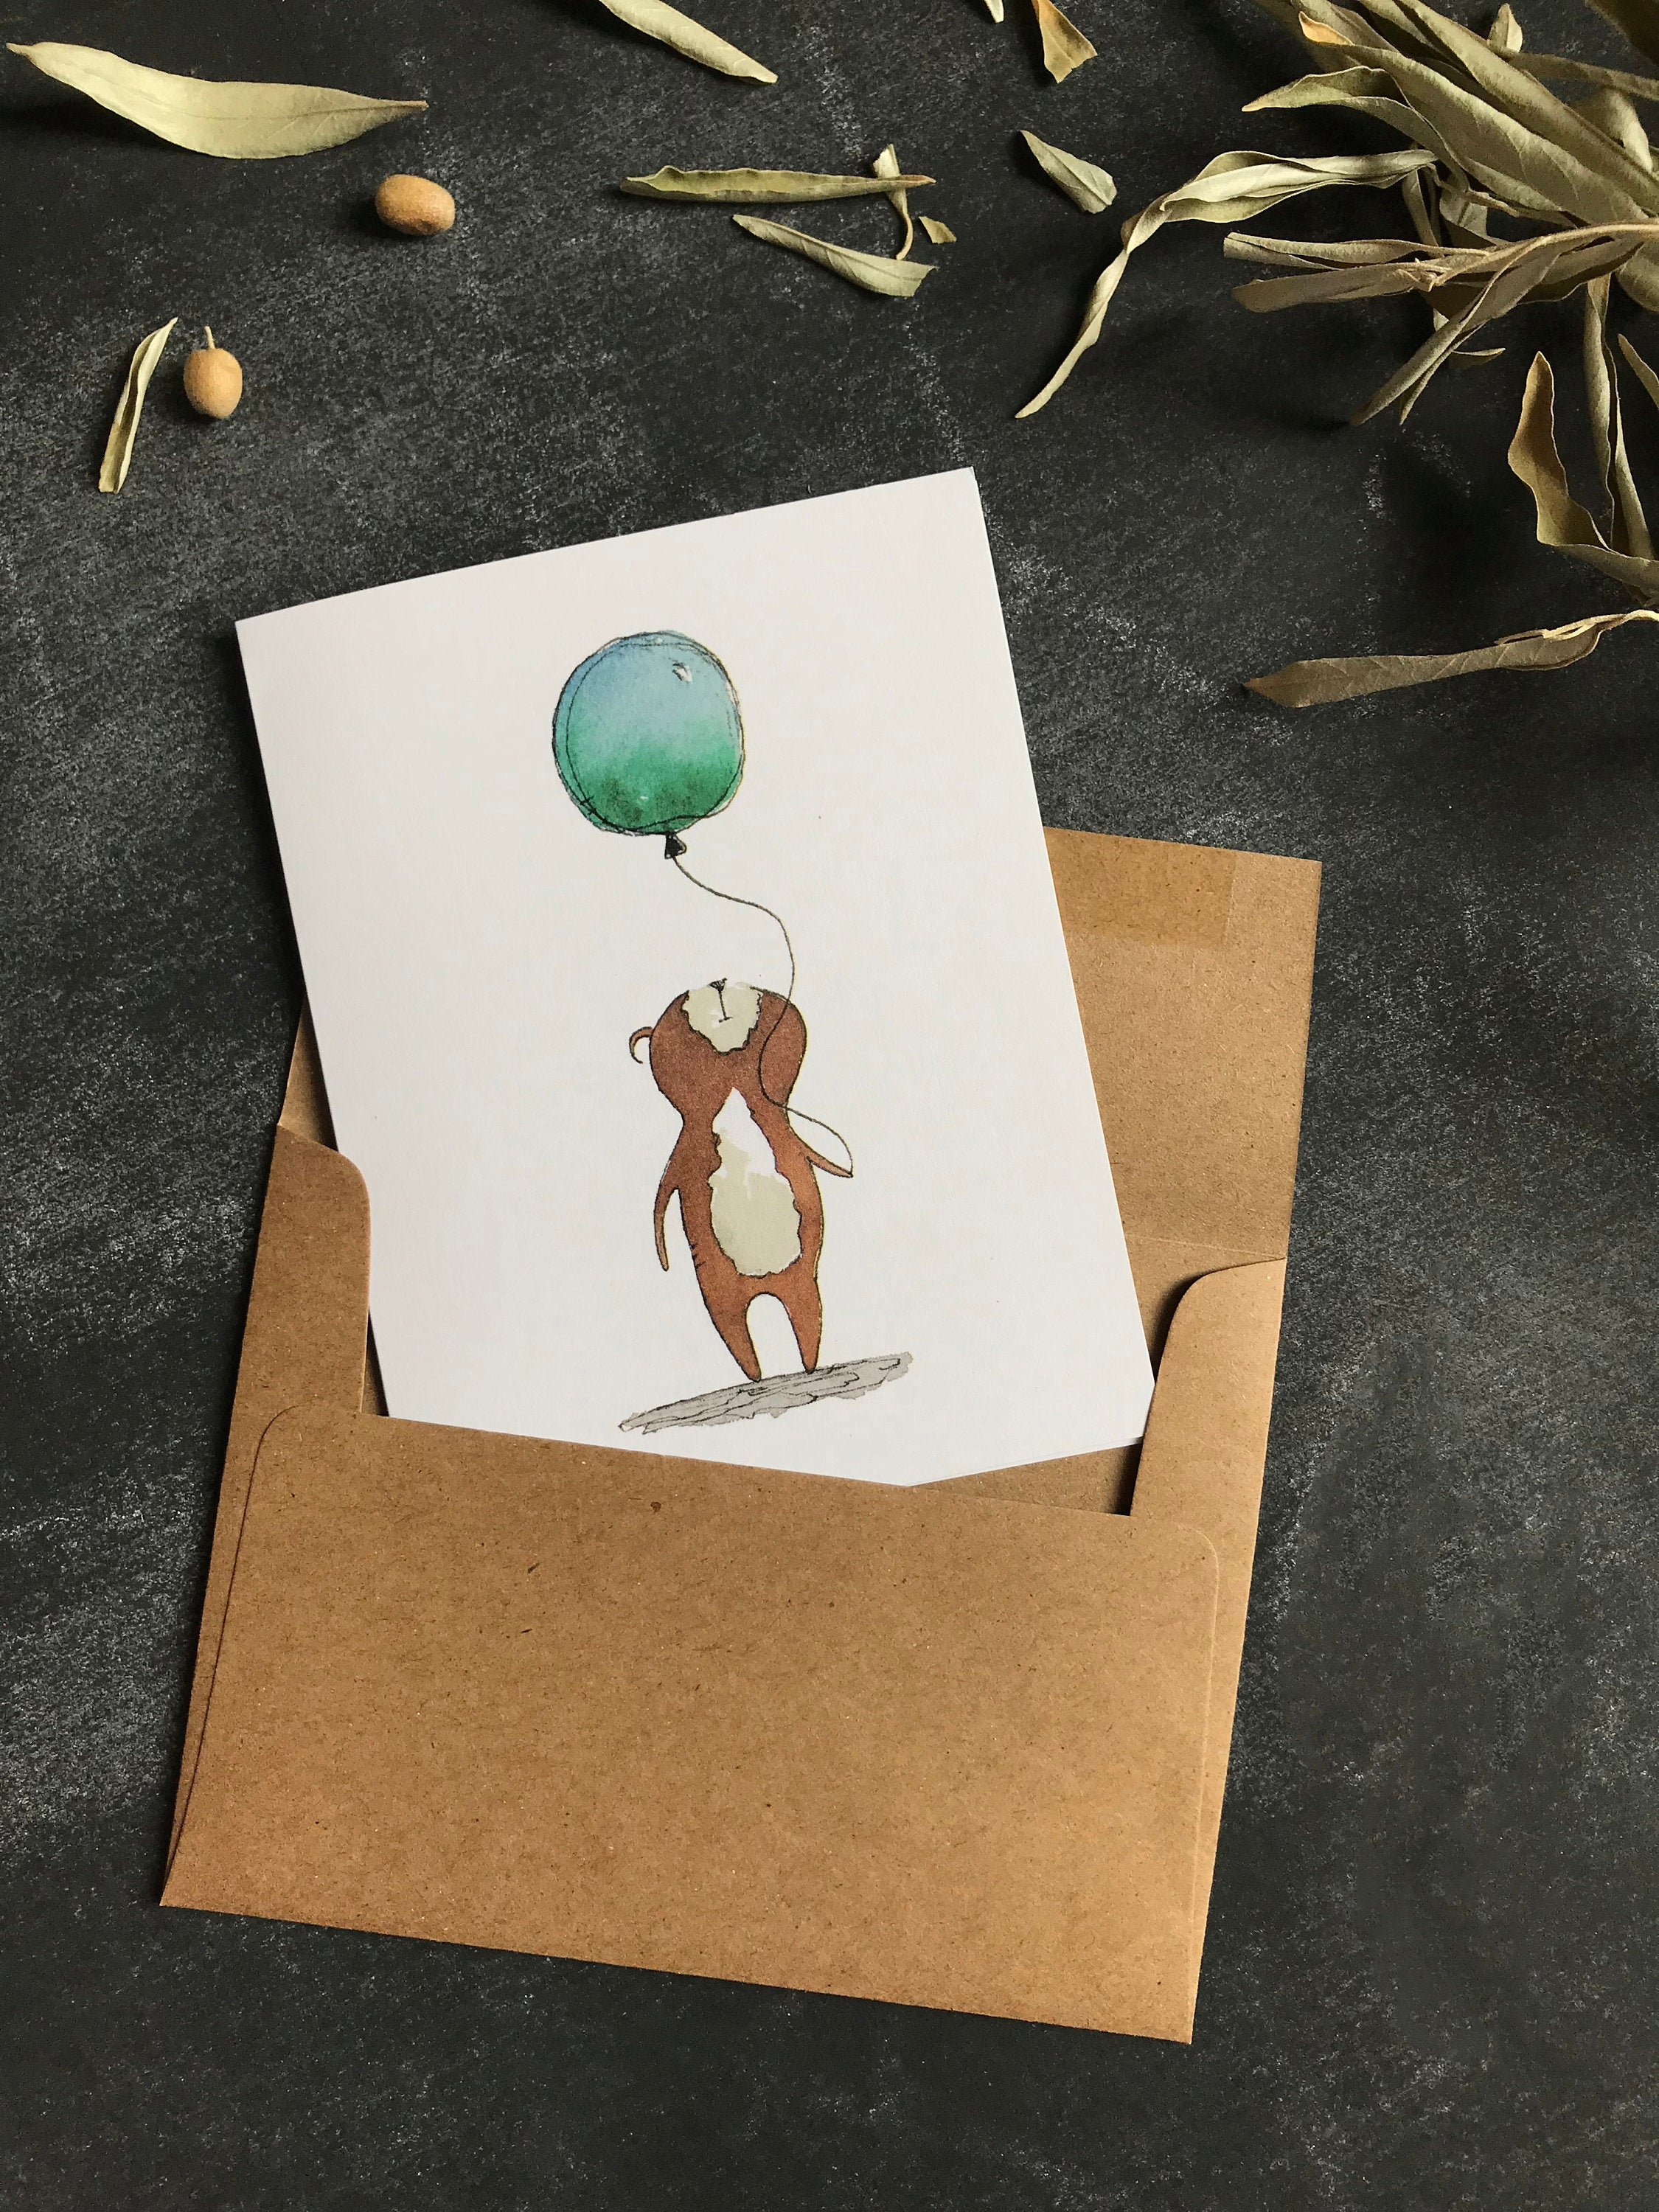 Greeting Cards Bear - Happy Birthday Card Bear - Notecards bear - Watercolor Card - Whimsical Card - Congratulations - Thinking of You card